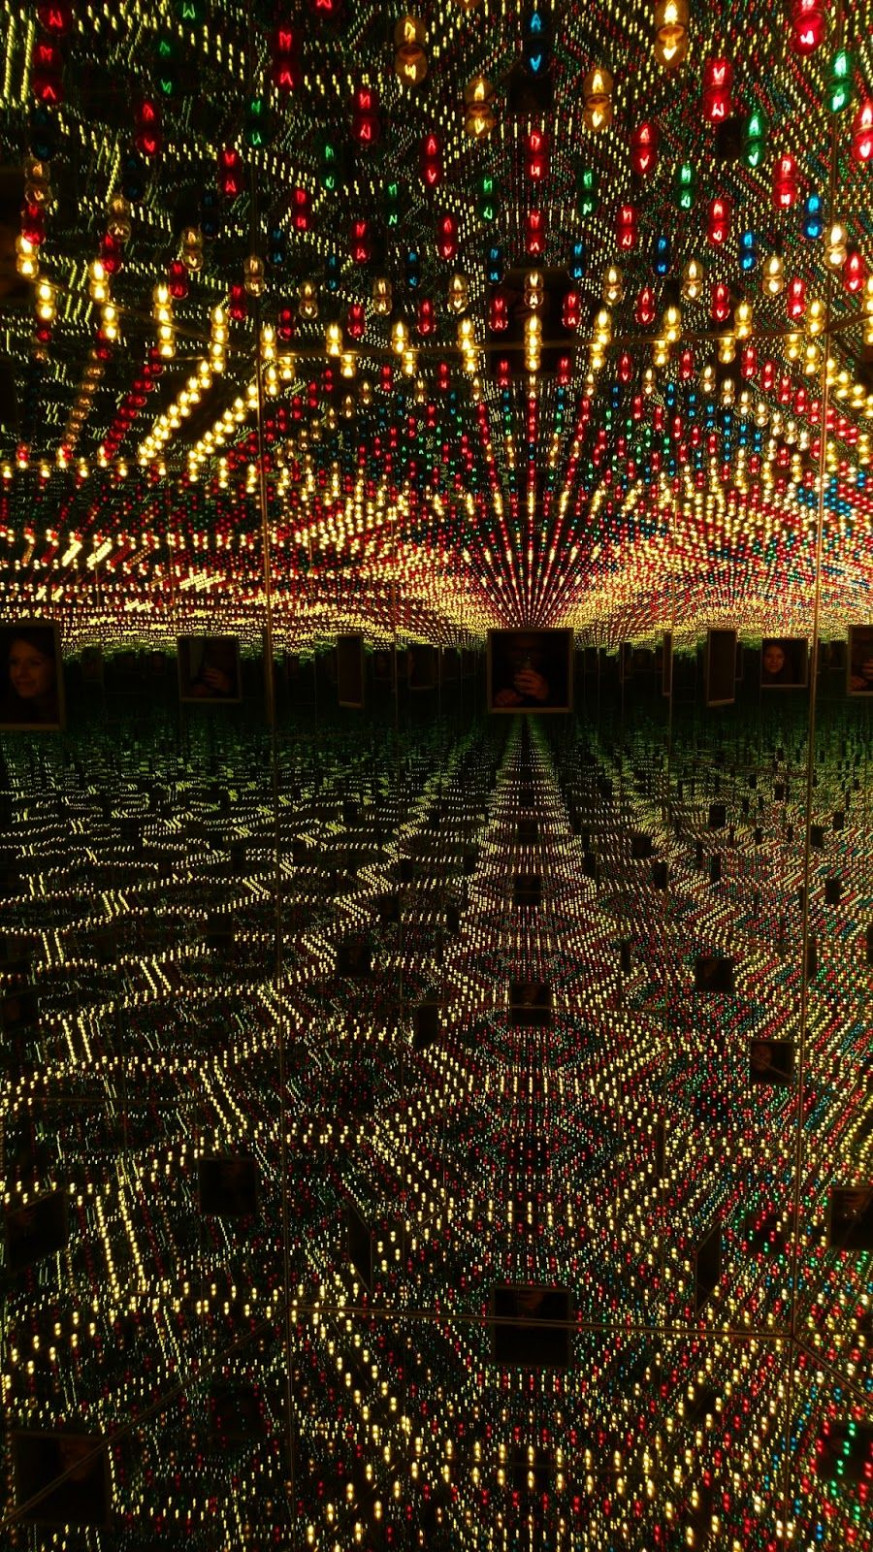 infinity mirrors toronto 8 tickets First Drive 8*8 ..